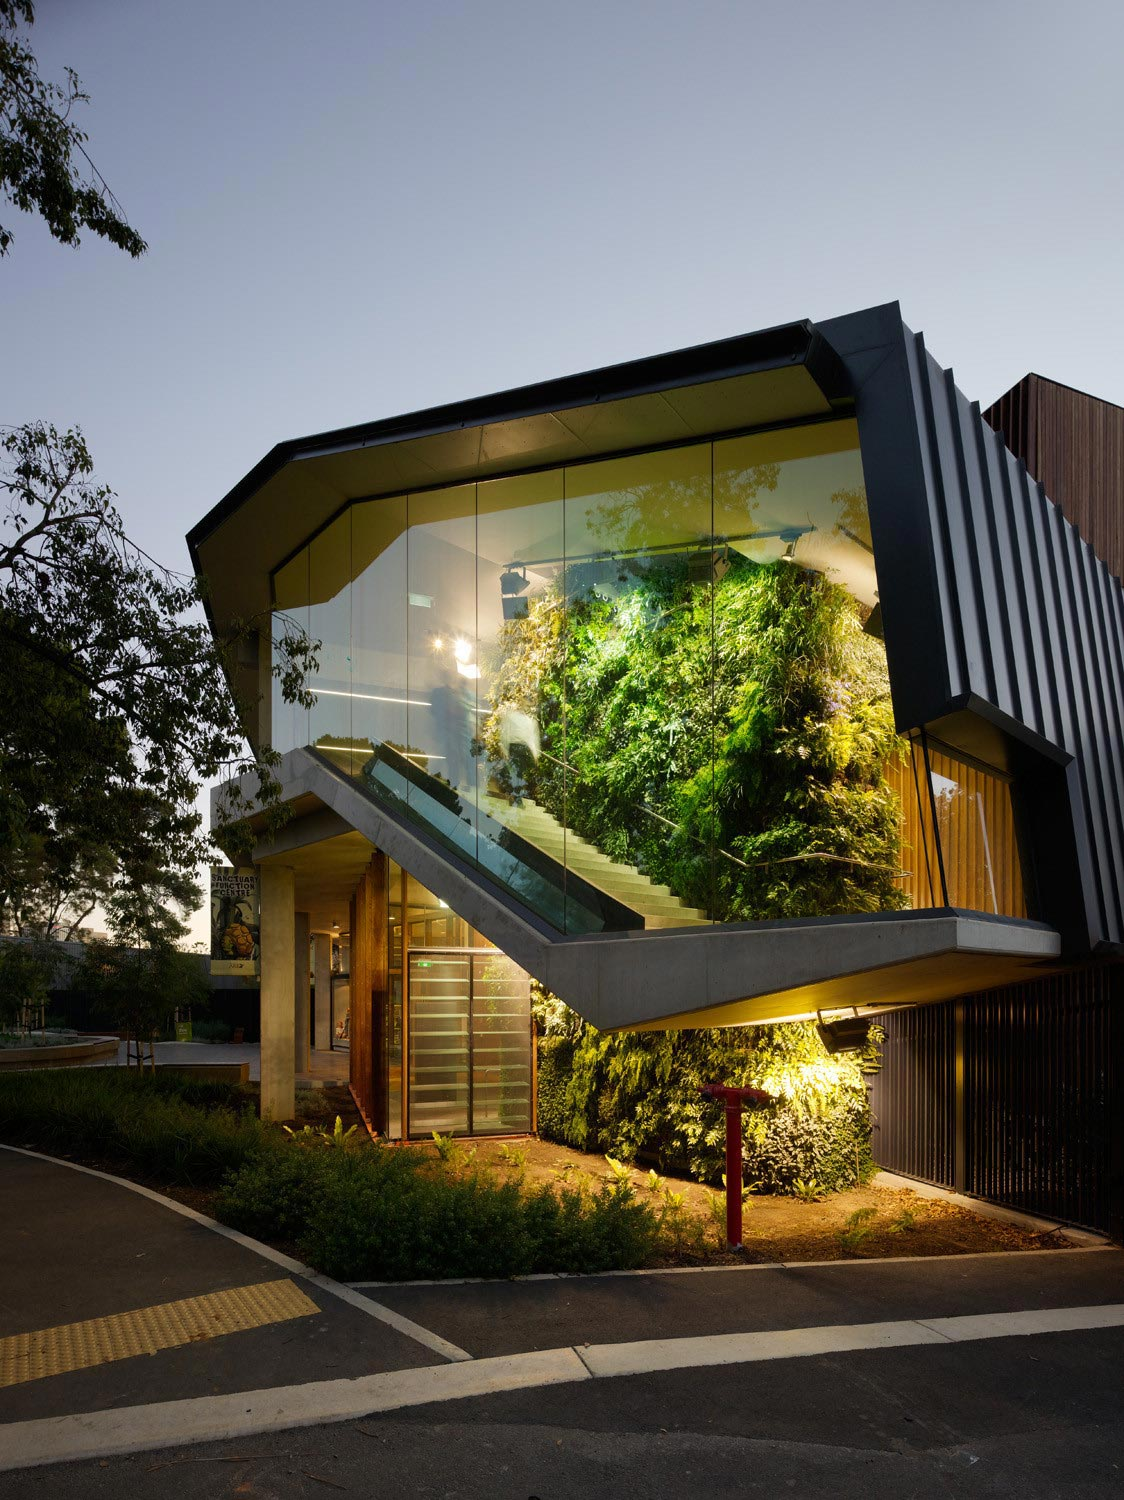 adelaide zoo entrance precinct comprises  series  interlinked forecourts designed  hassell